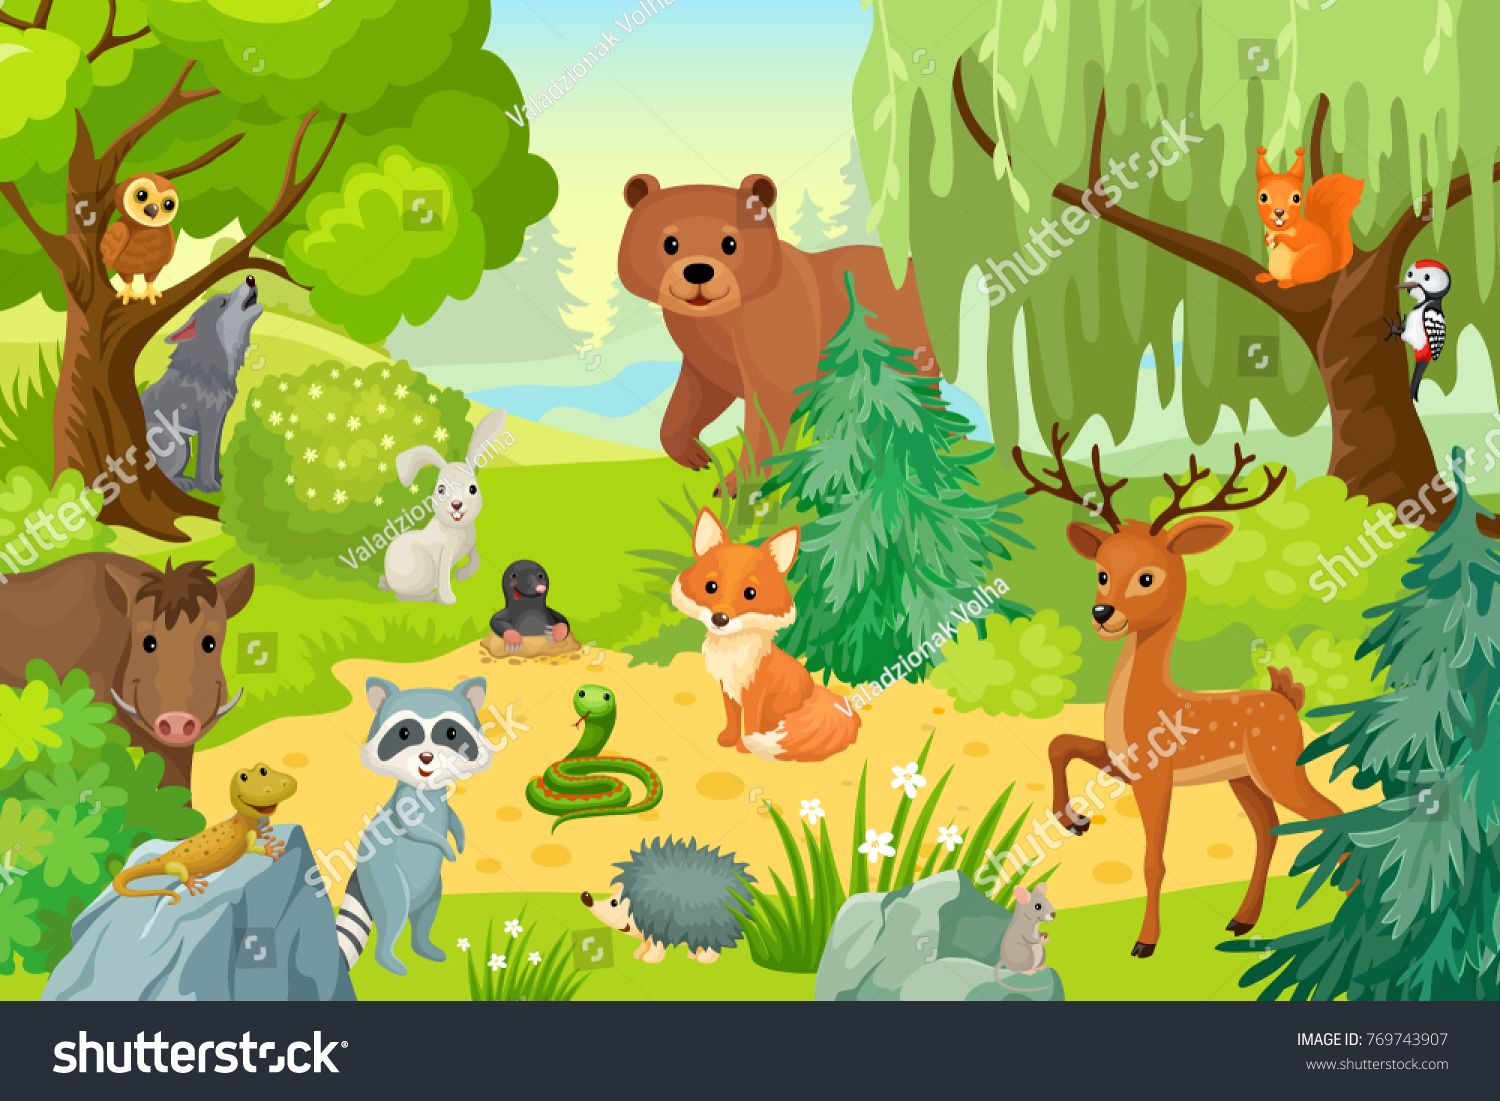 Group of wild animals on the fringe of the forest. Vector